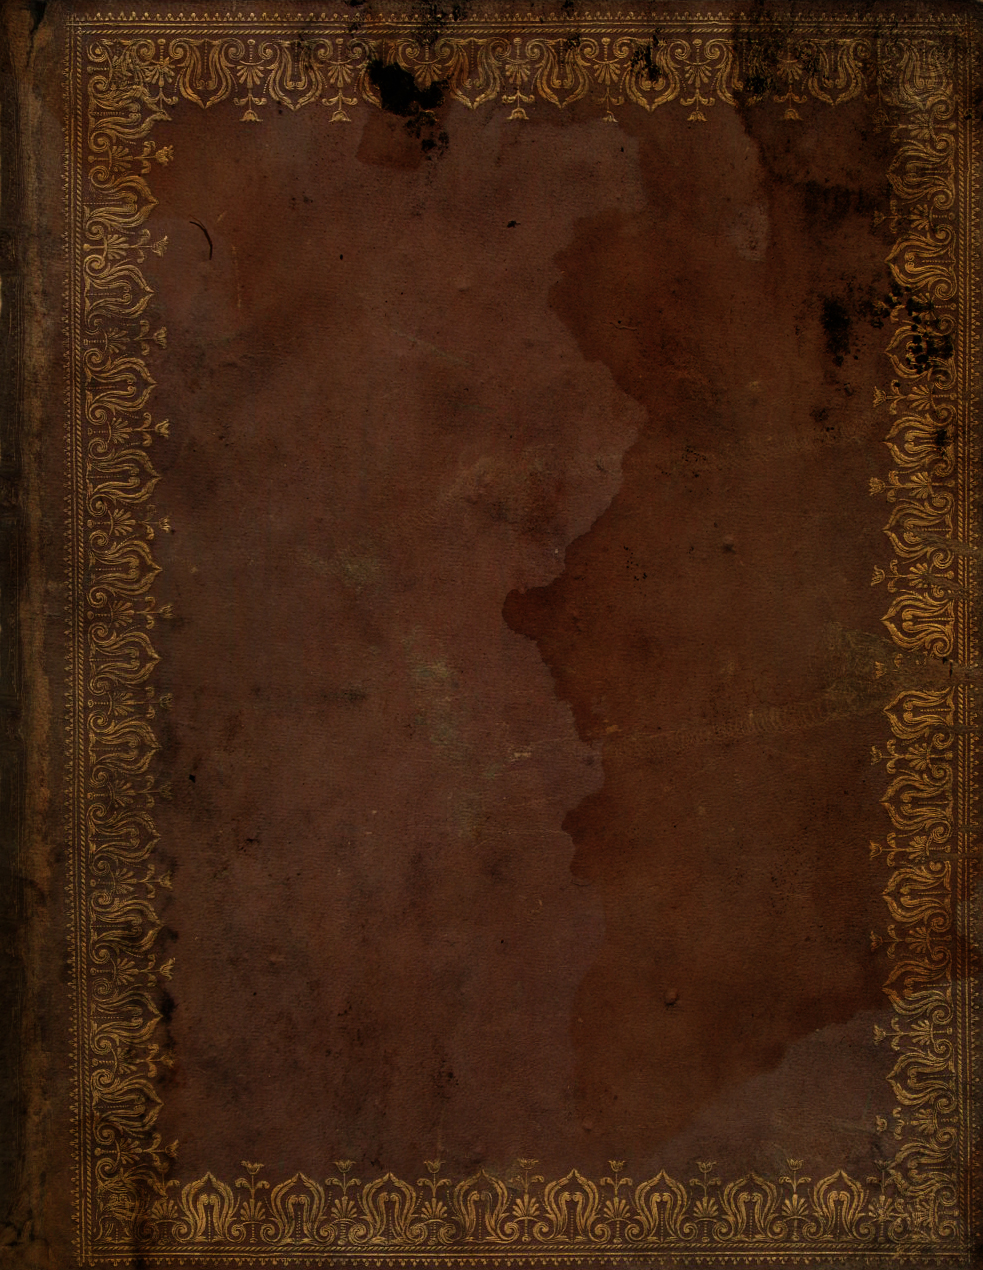 Book Cover Pictures Free ~ Cover book texture download background